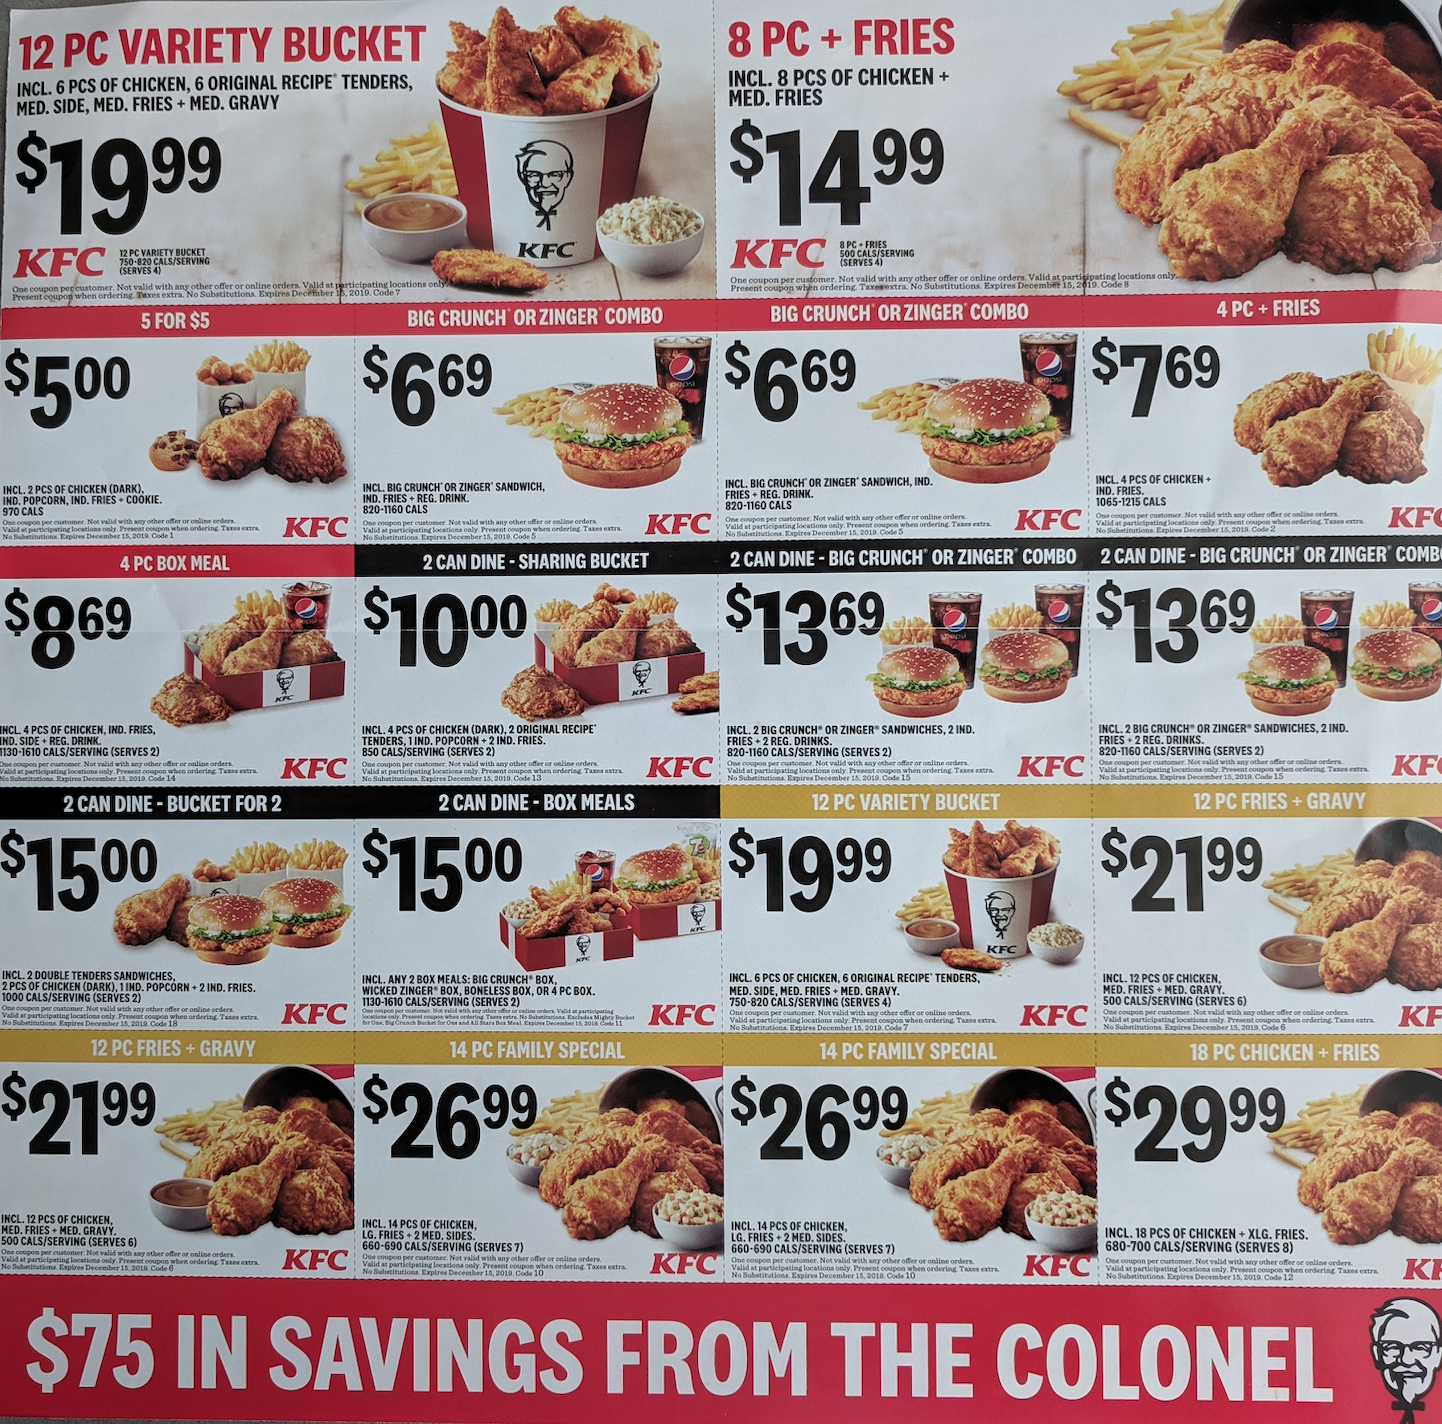 Kfc Canada New Mailer Coupons 5 For 5 00 More Coupons Deals Hot Canada Deals Hot Canada Deals